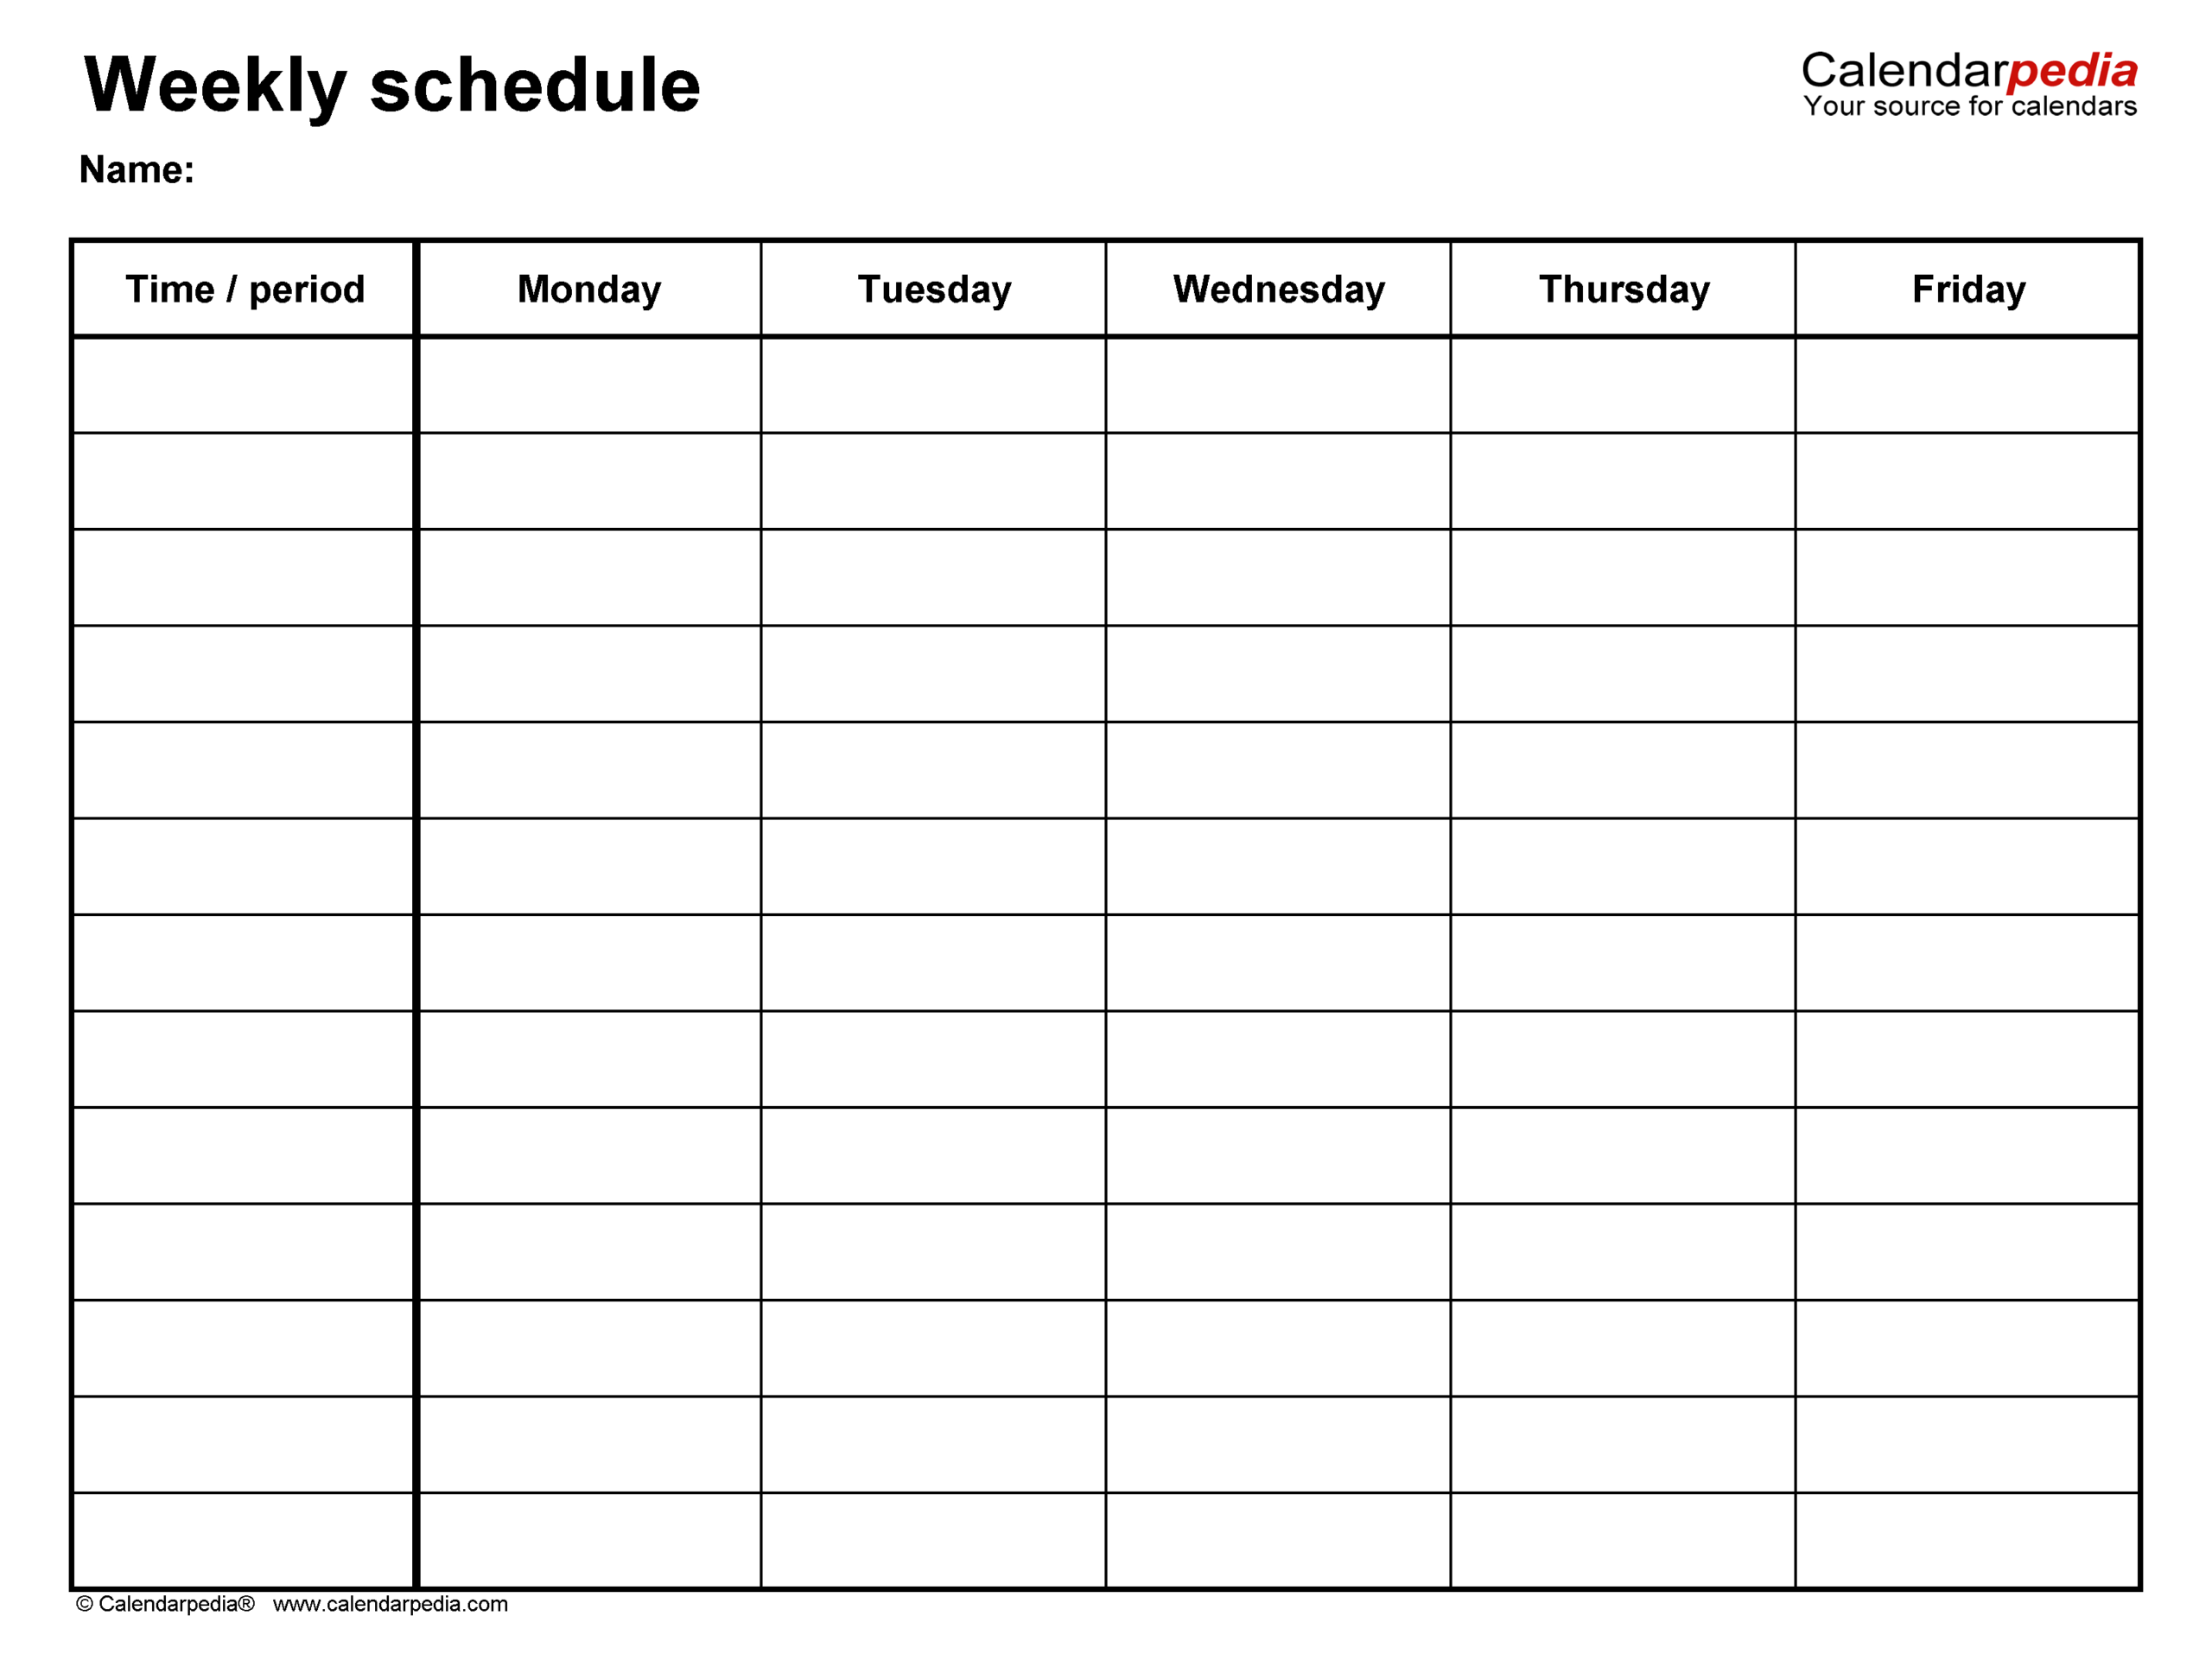 Free Weekly Schedule Templates For Excel  18 Templates with Monday Through Friday Calendar Template Excel